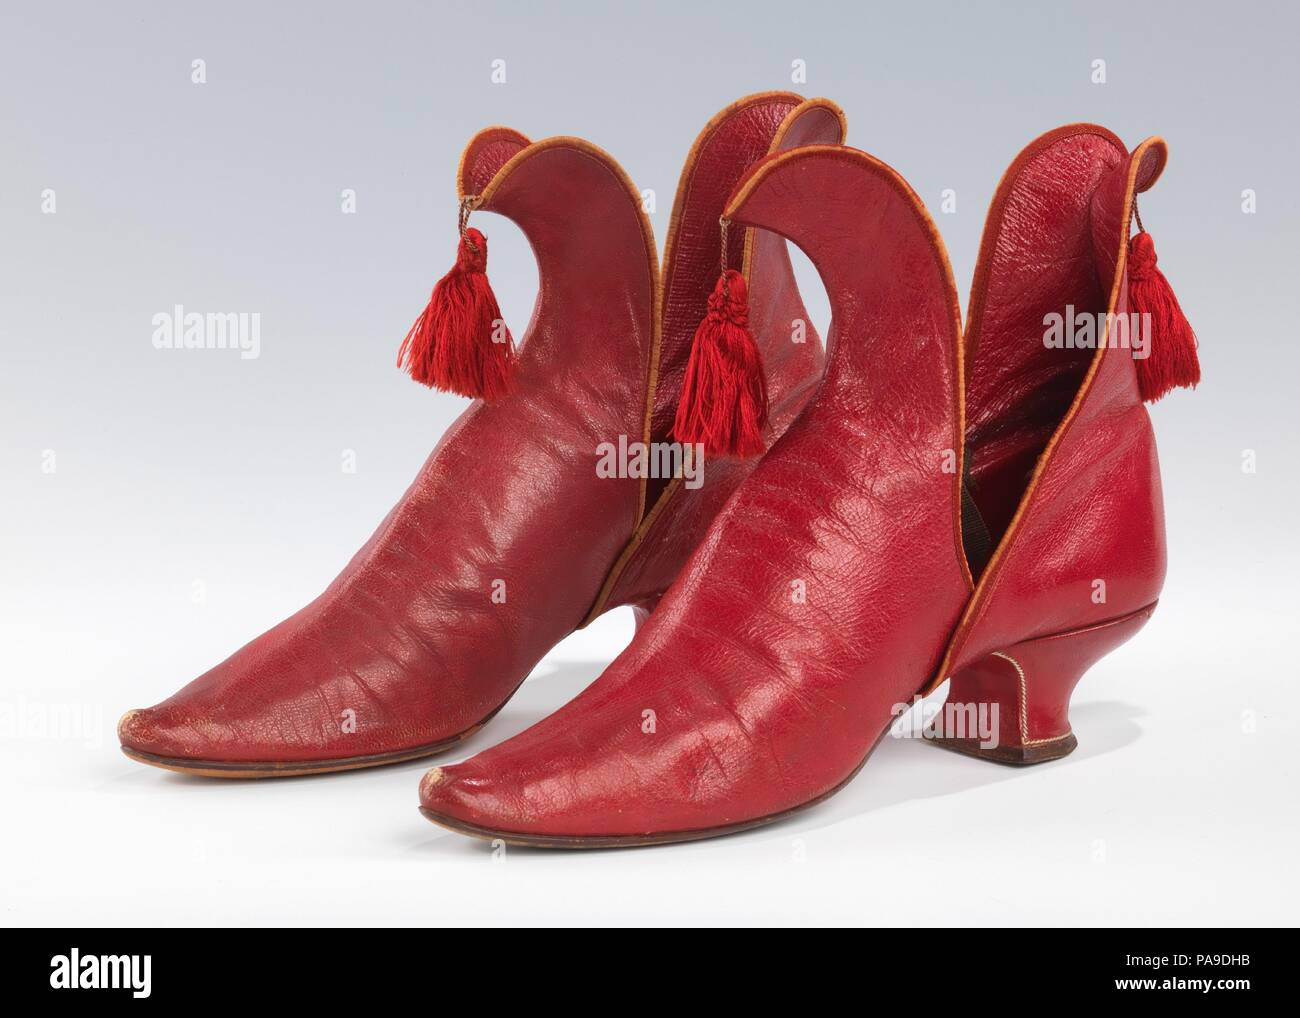 Slippers  Culture: American  Department Store: Rosenbloom's